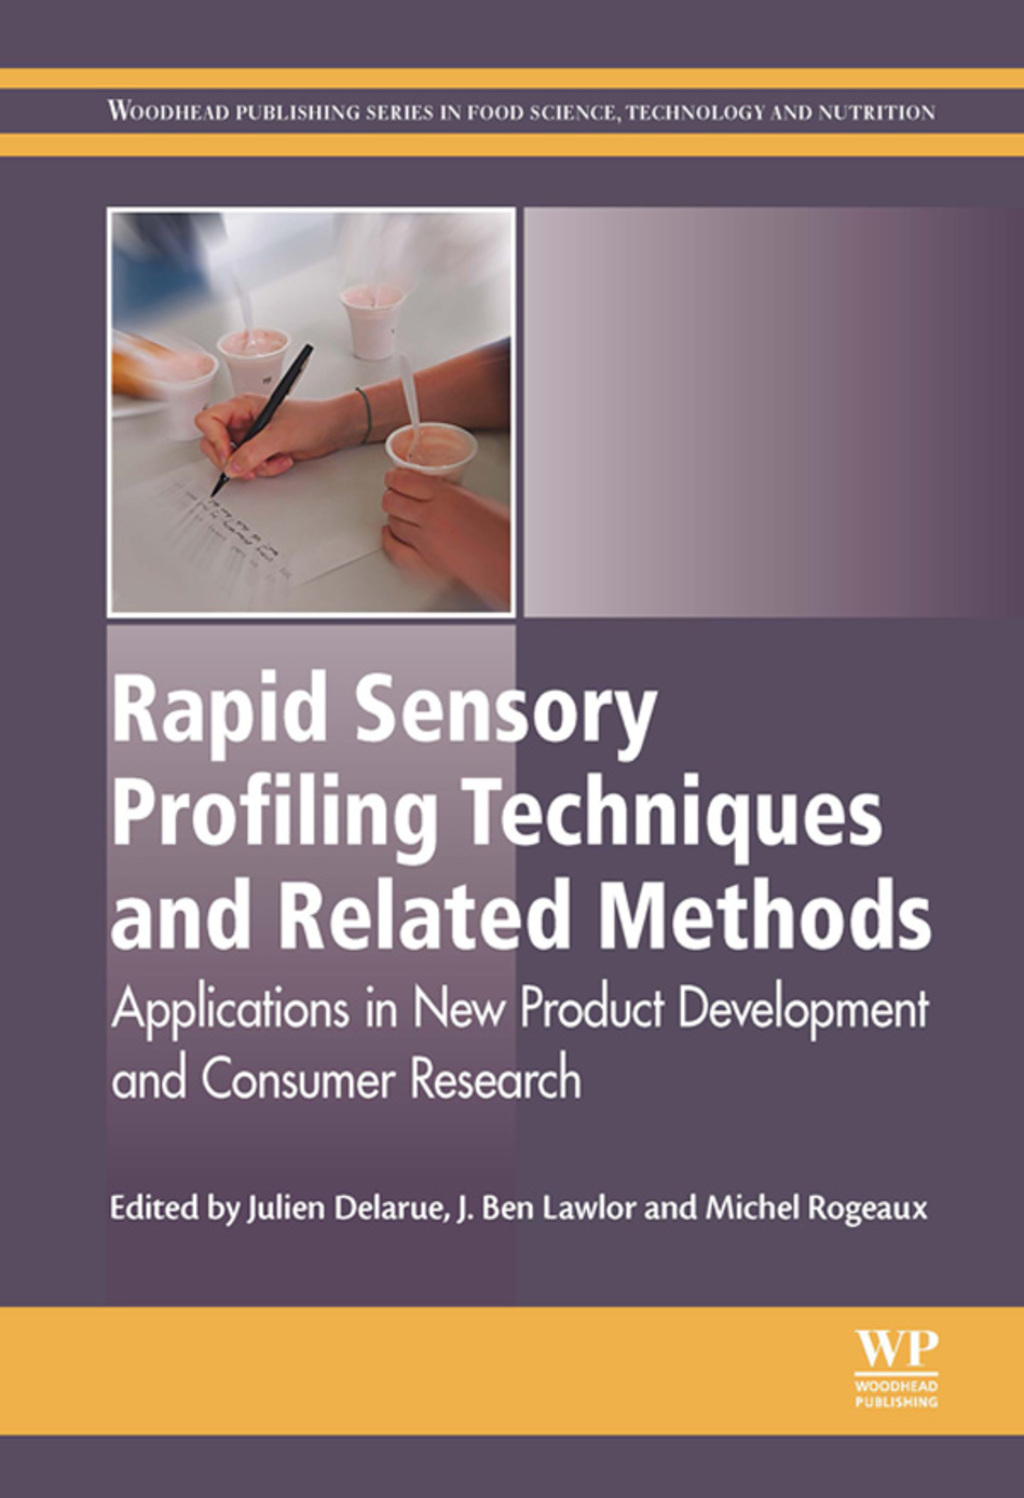 Rapid Sensory Profiling Techniques: Applications in New Product Development and Consumer Research (ebook) eBooks